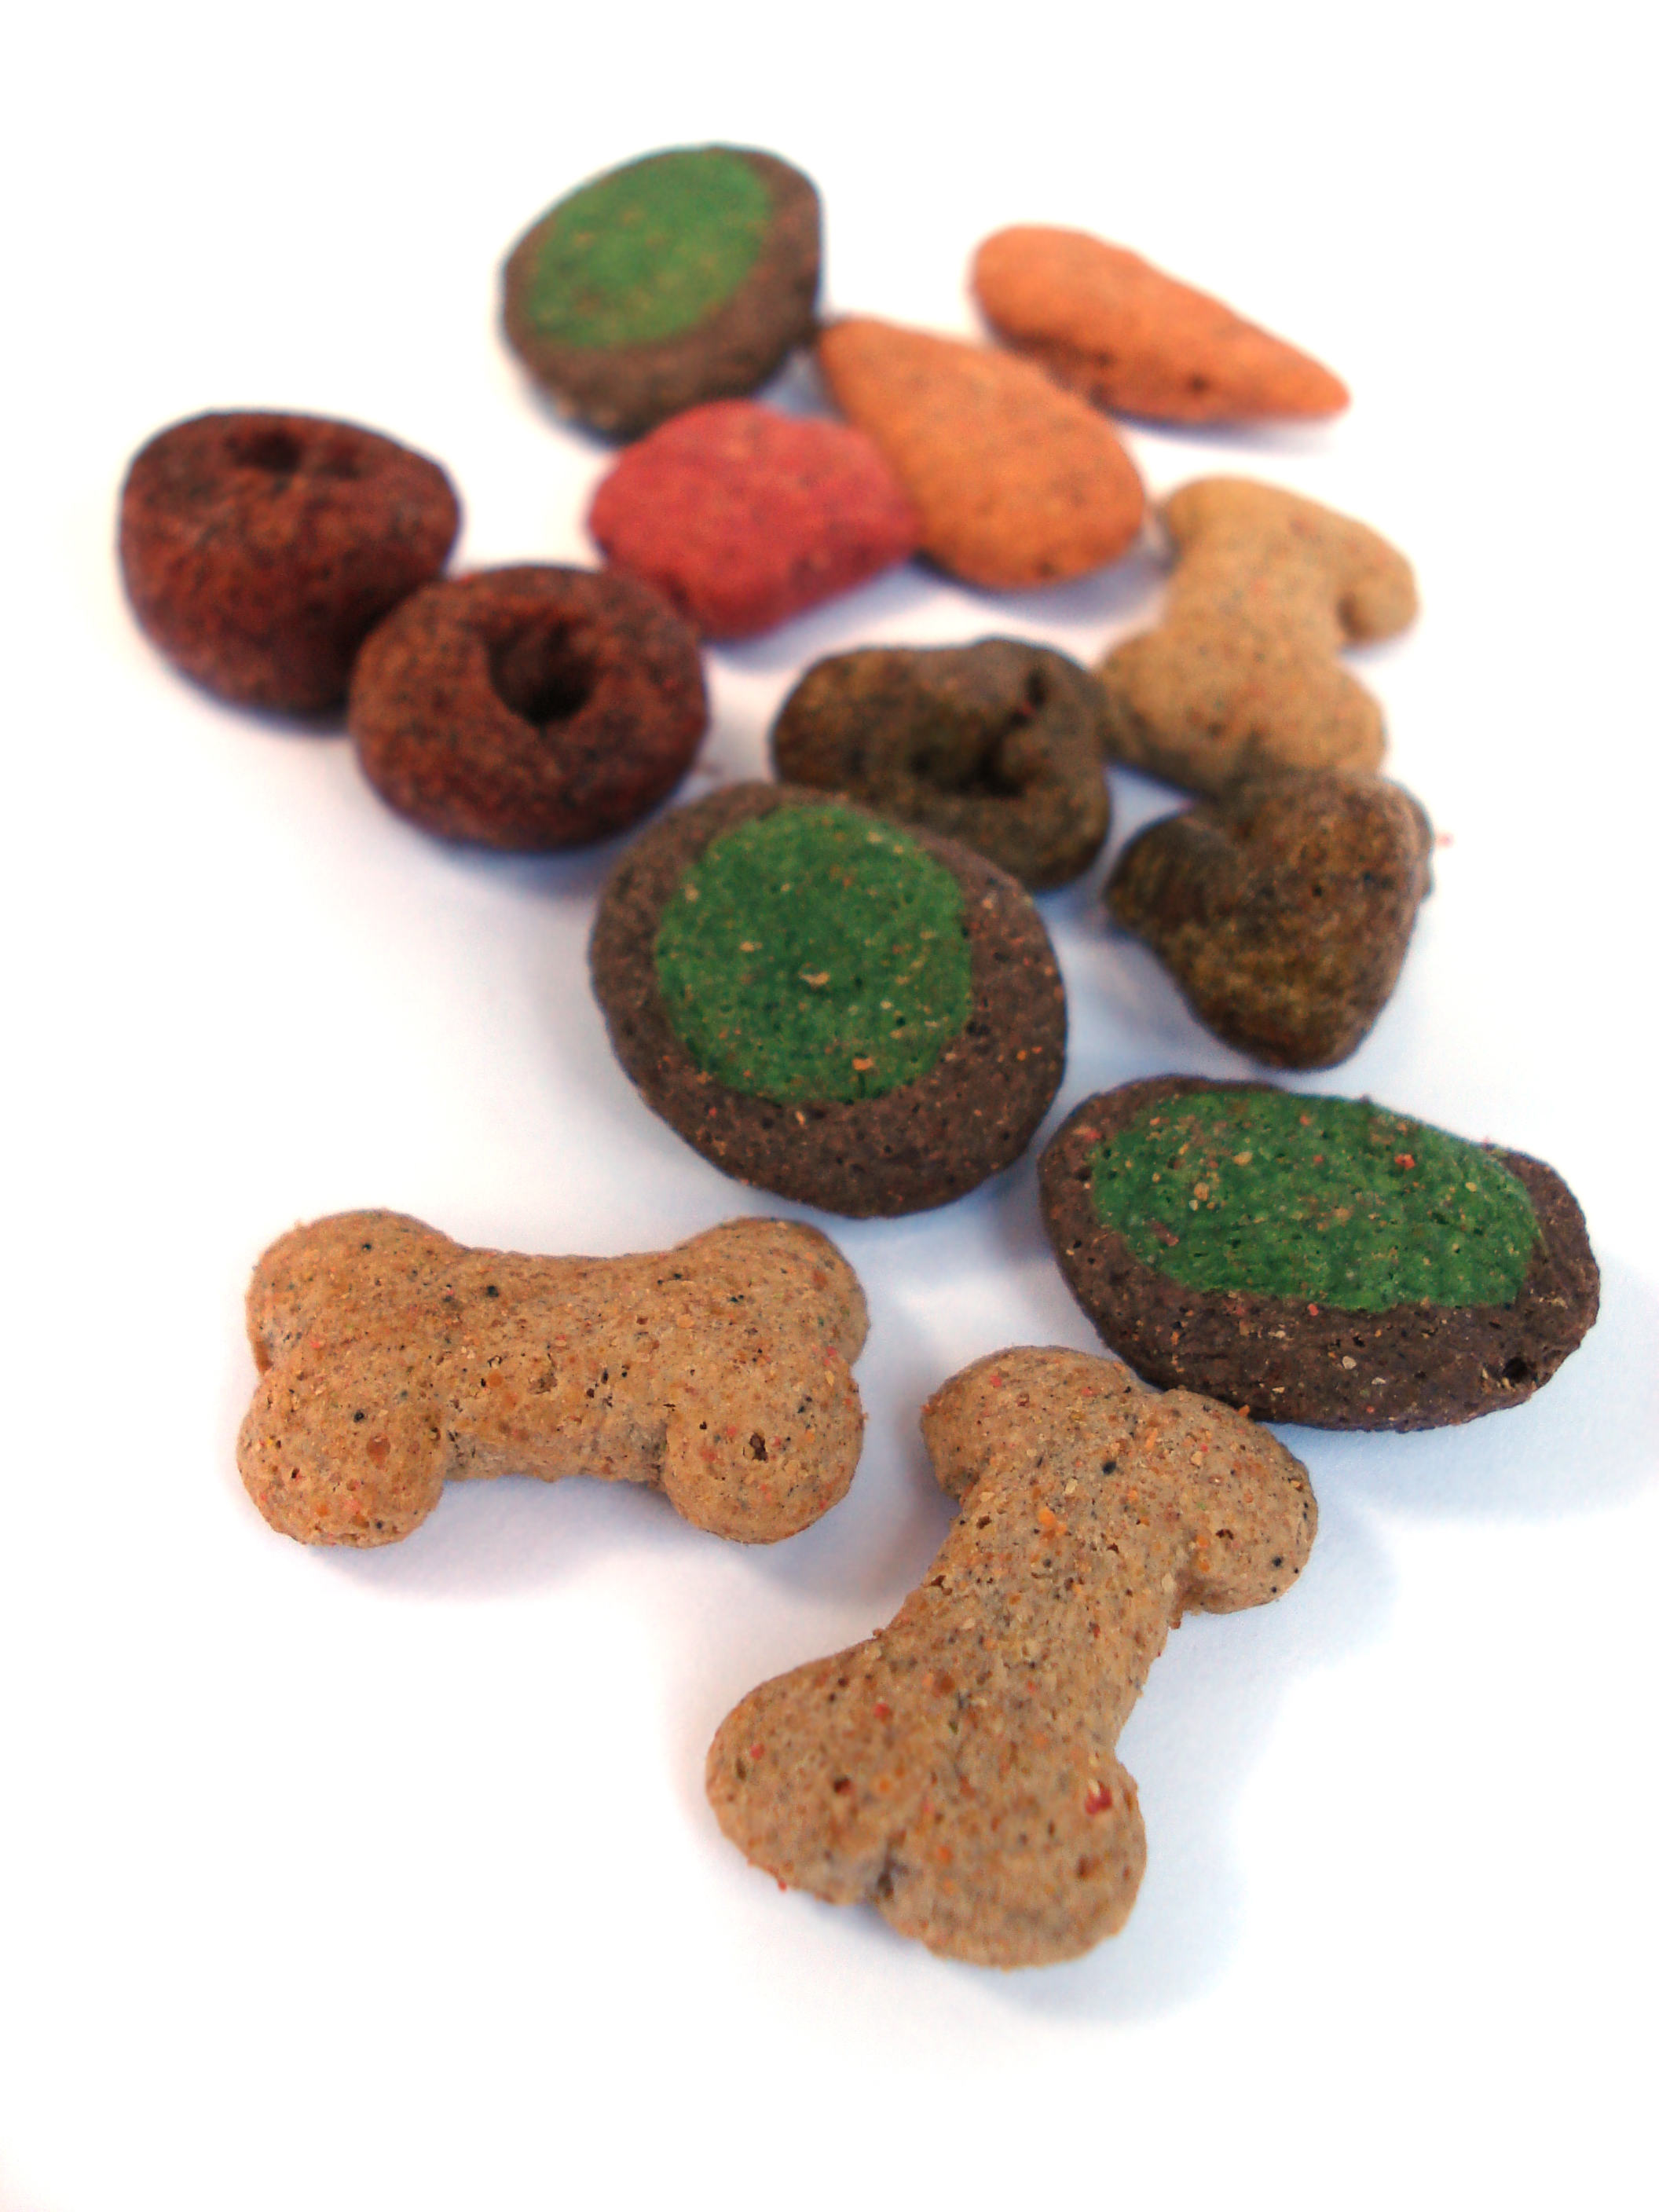 Best Dry Food For Dogs With Ibd